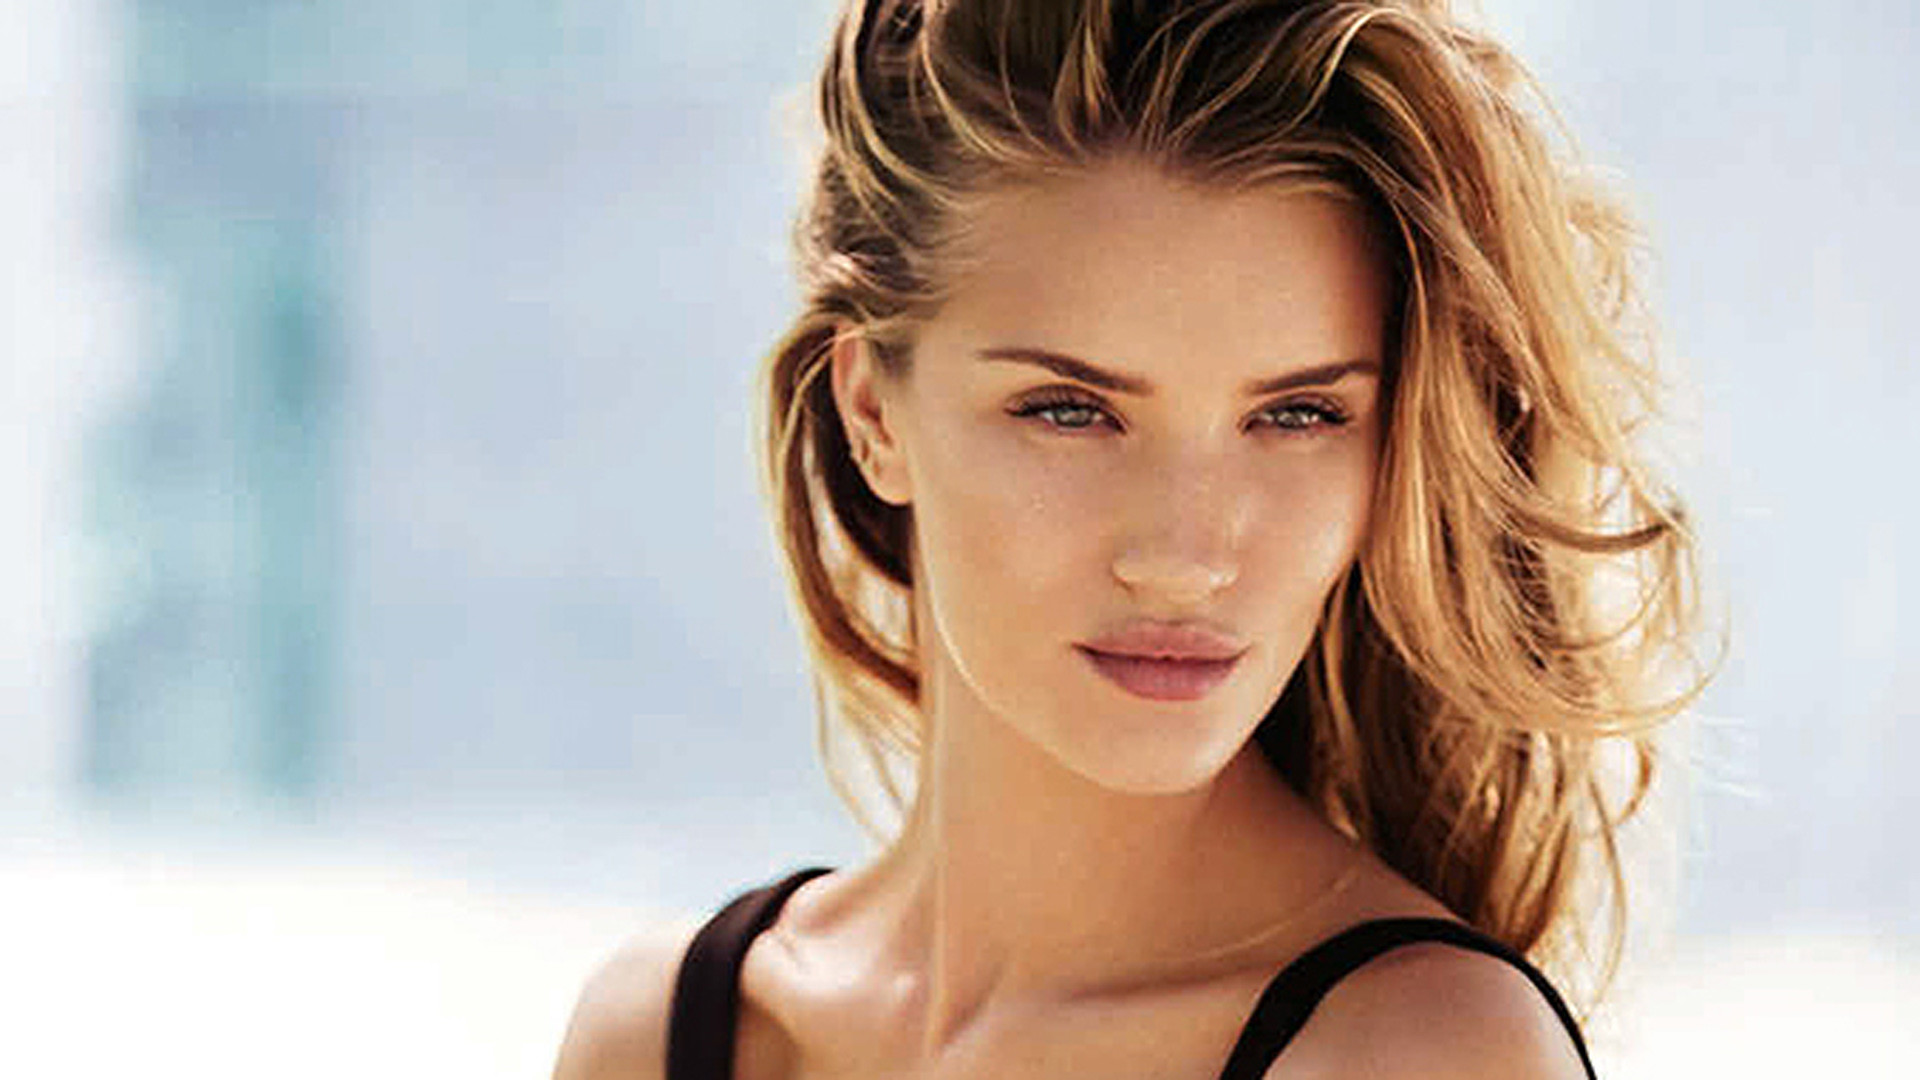 Rosie Huntington Whiteley Wallpapers 73 Images